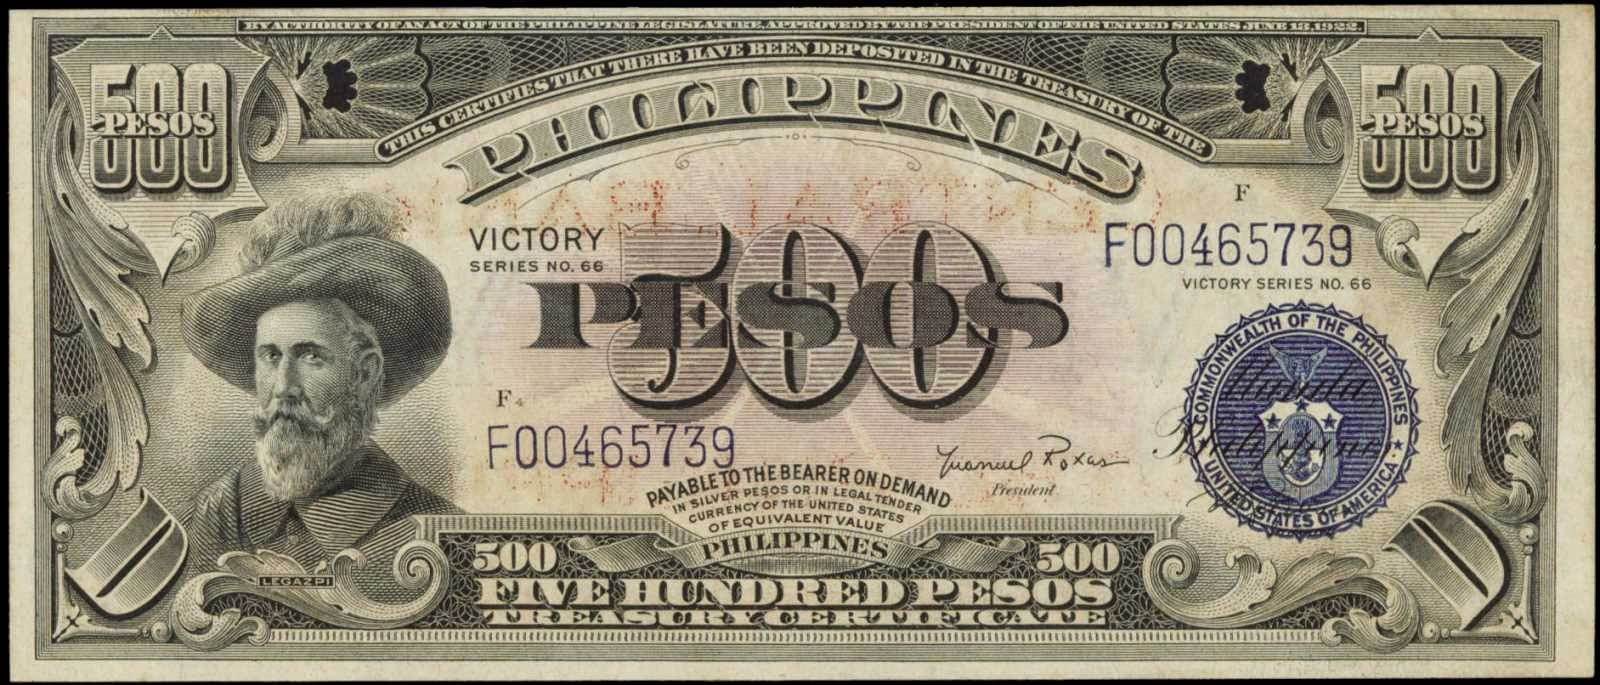 Philippines banknotes paper money 500 pesos 1944 Victory Series Legazpi